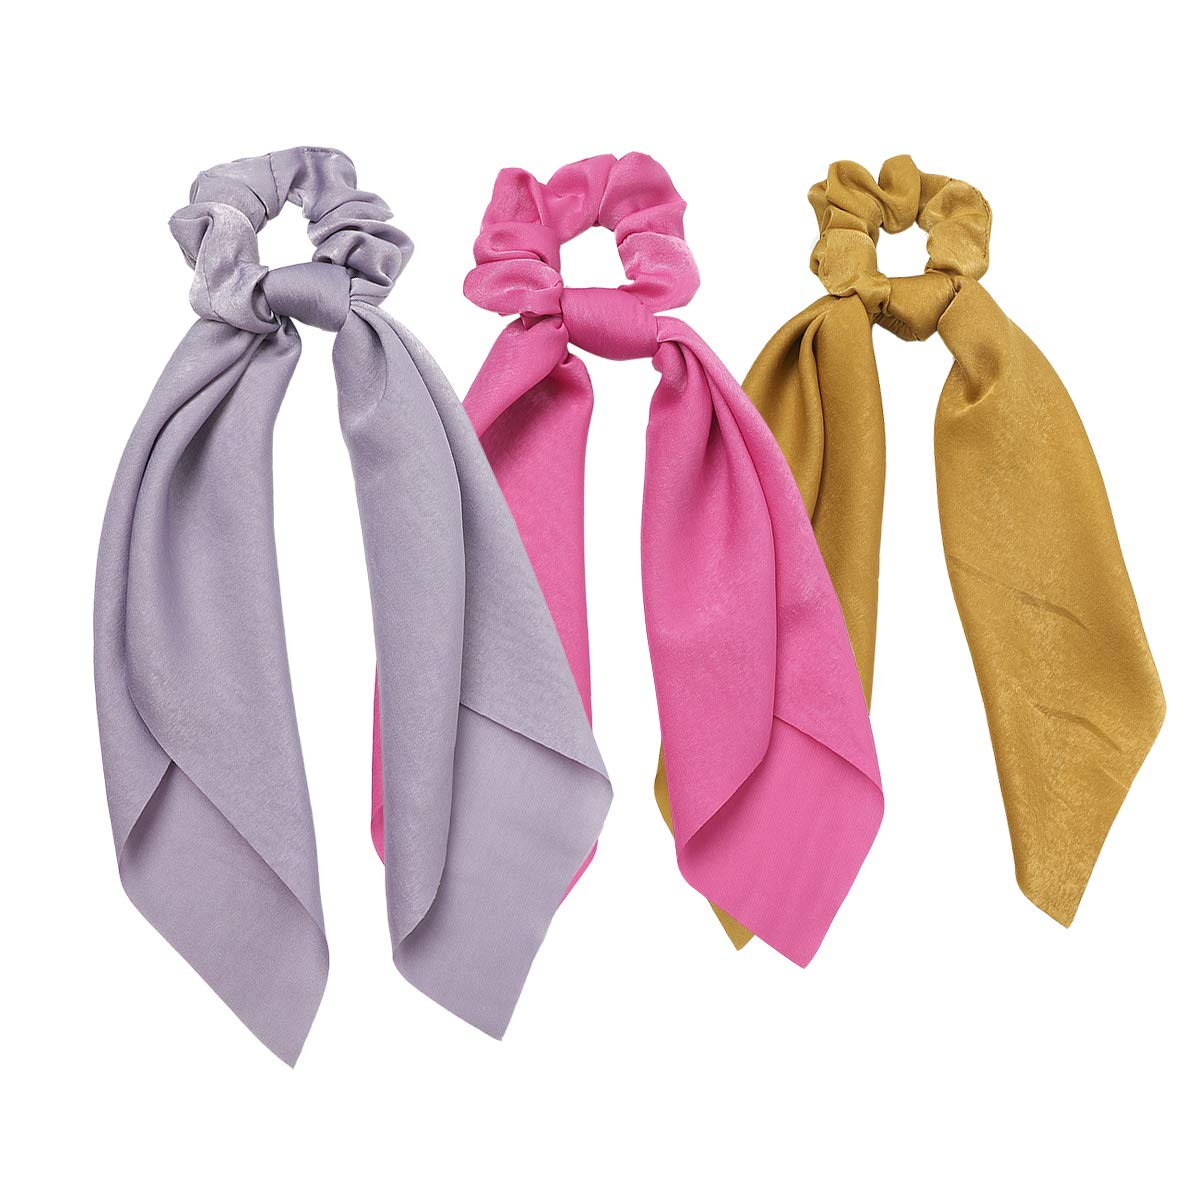 WONSAMAM Hair Scarves & Hair Ties, Fashion Cotton Hair Ribbon Bow Scrunchies with Solid Colors, Soft Hair Scarf, Bunny Ear Scrunchies, Satin Scarf Hair Ties Bowknot Ponytail Holder for Women Girls